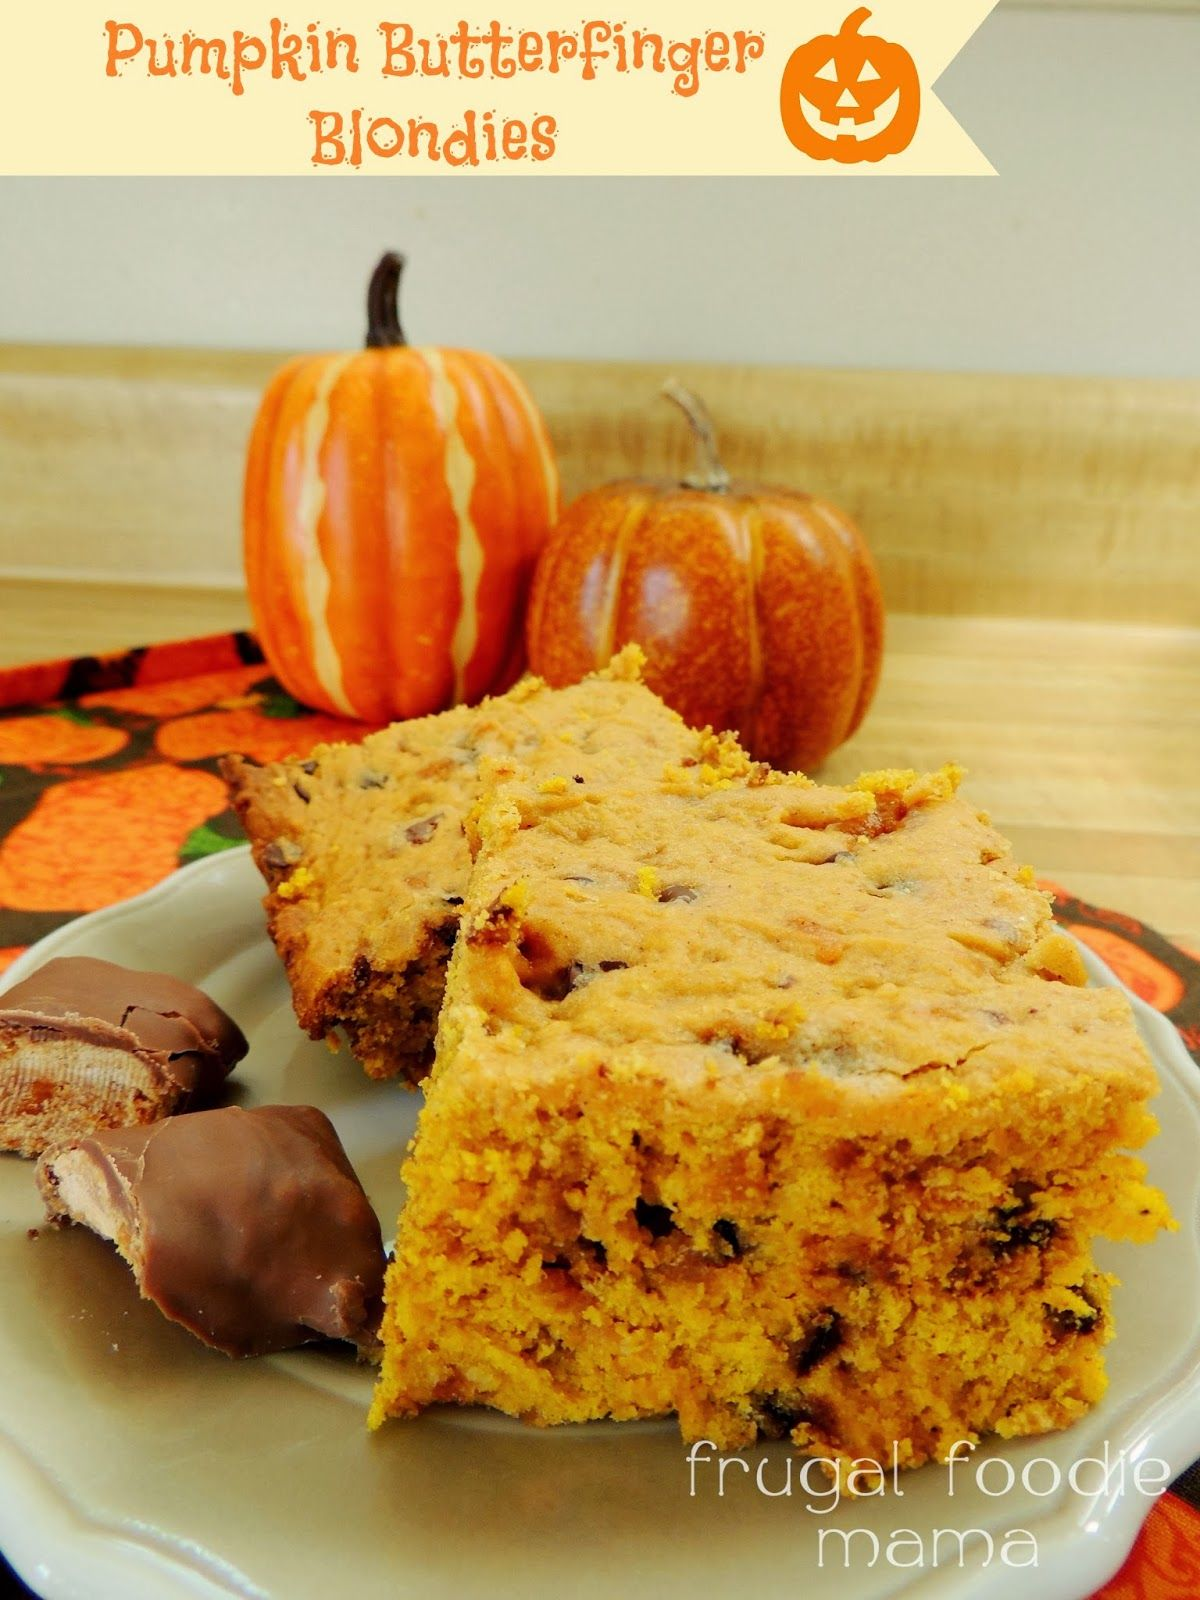 Pumpkin Butterfinger Blondies- a moist, cake-like blondie full of Butterfingers and chocolate chips